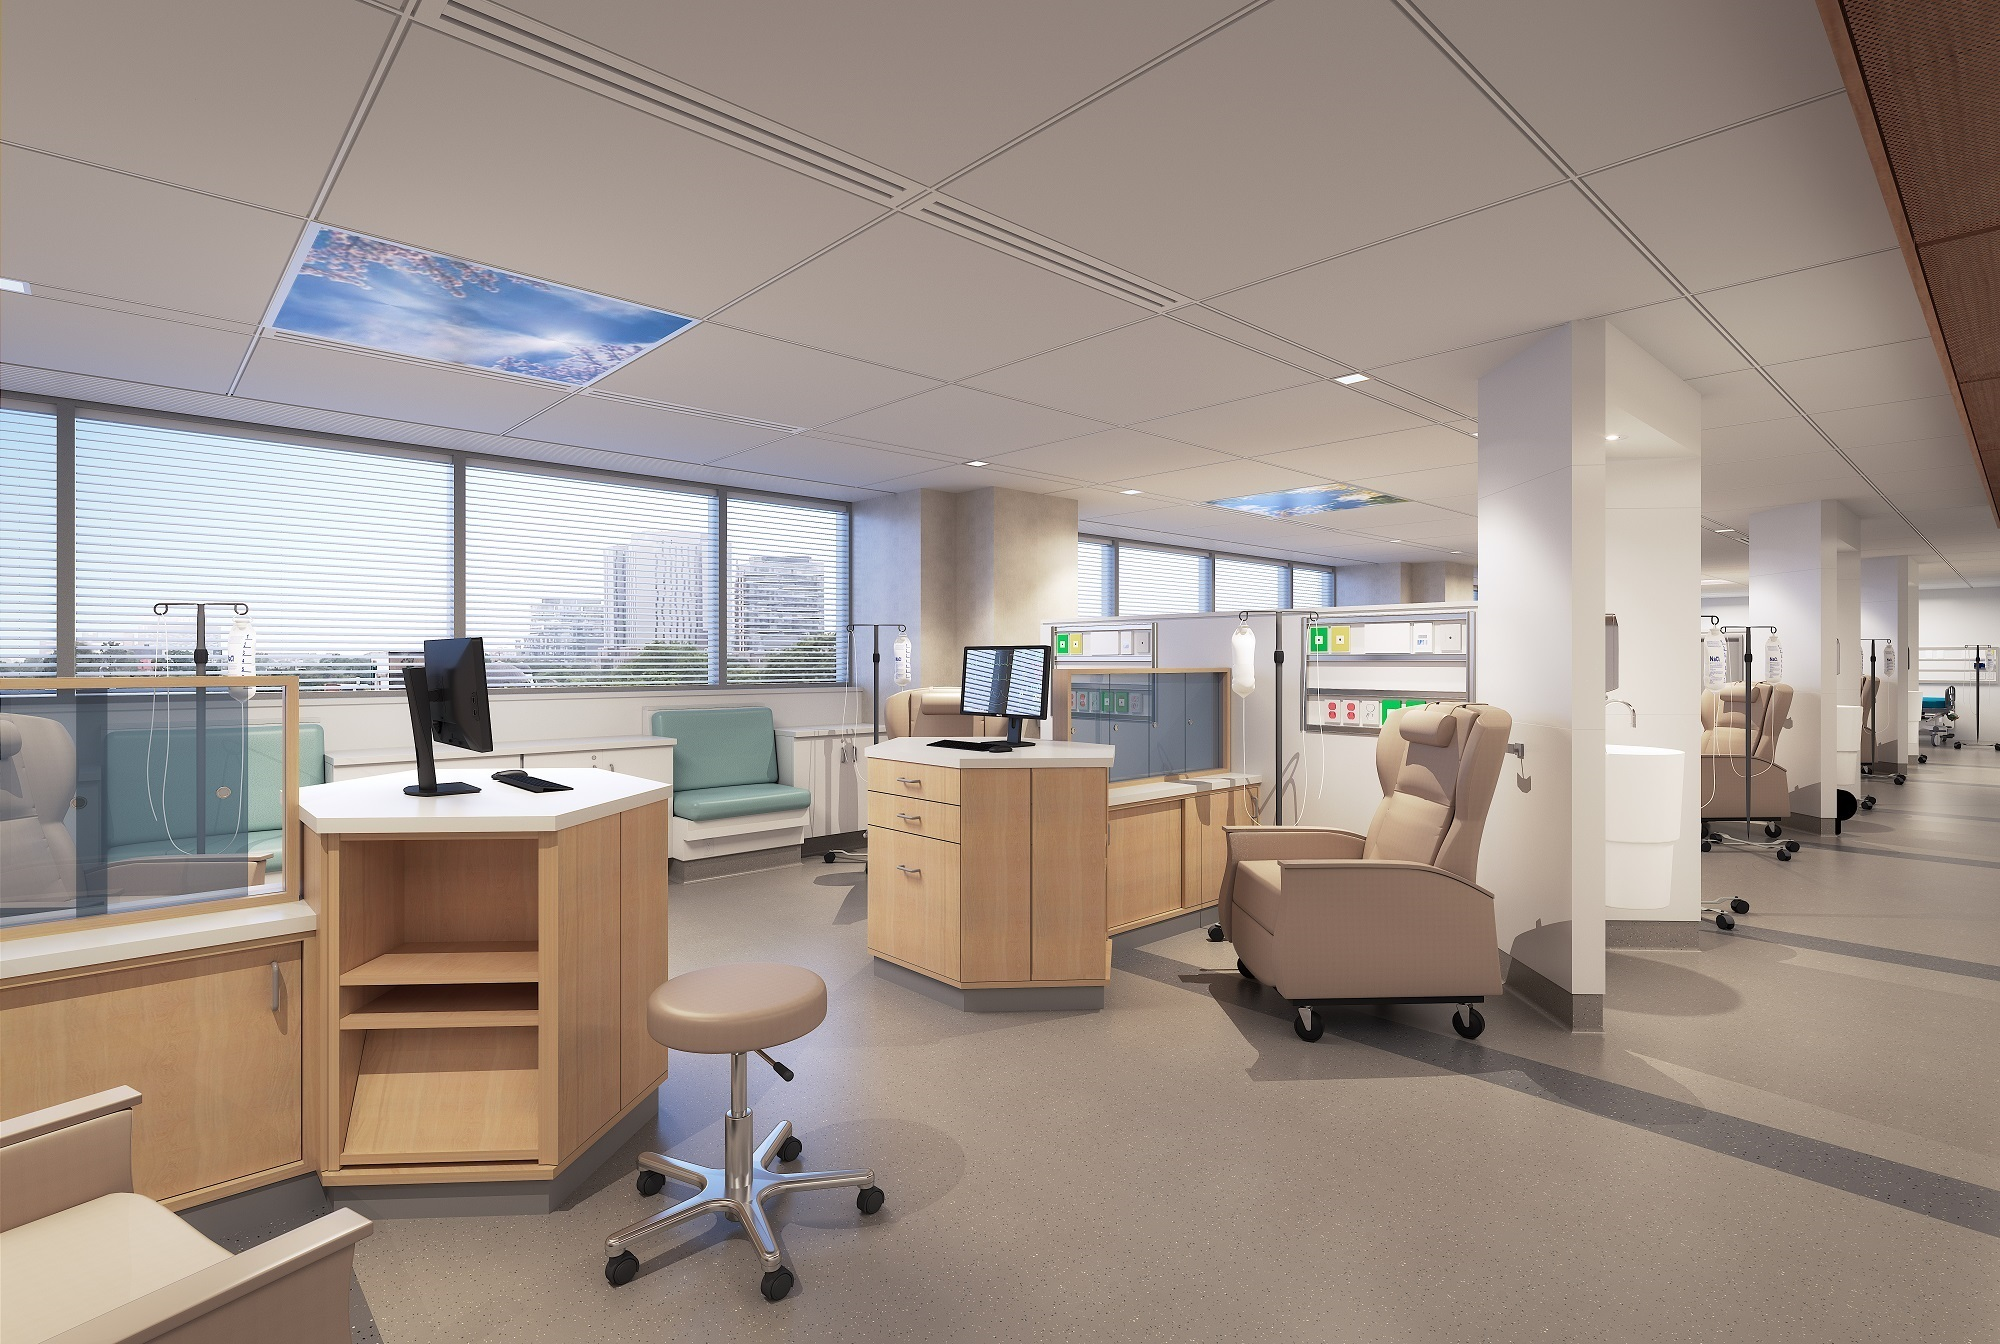 A computer rendering of a new cancer clinic that has multiple stations for patients, with a recliner and a stand for an intravenous bag in each station.